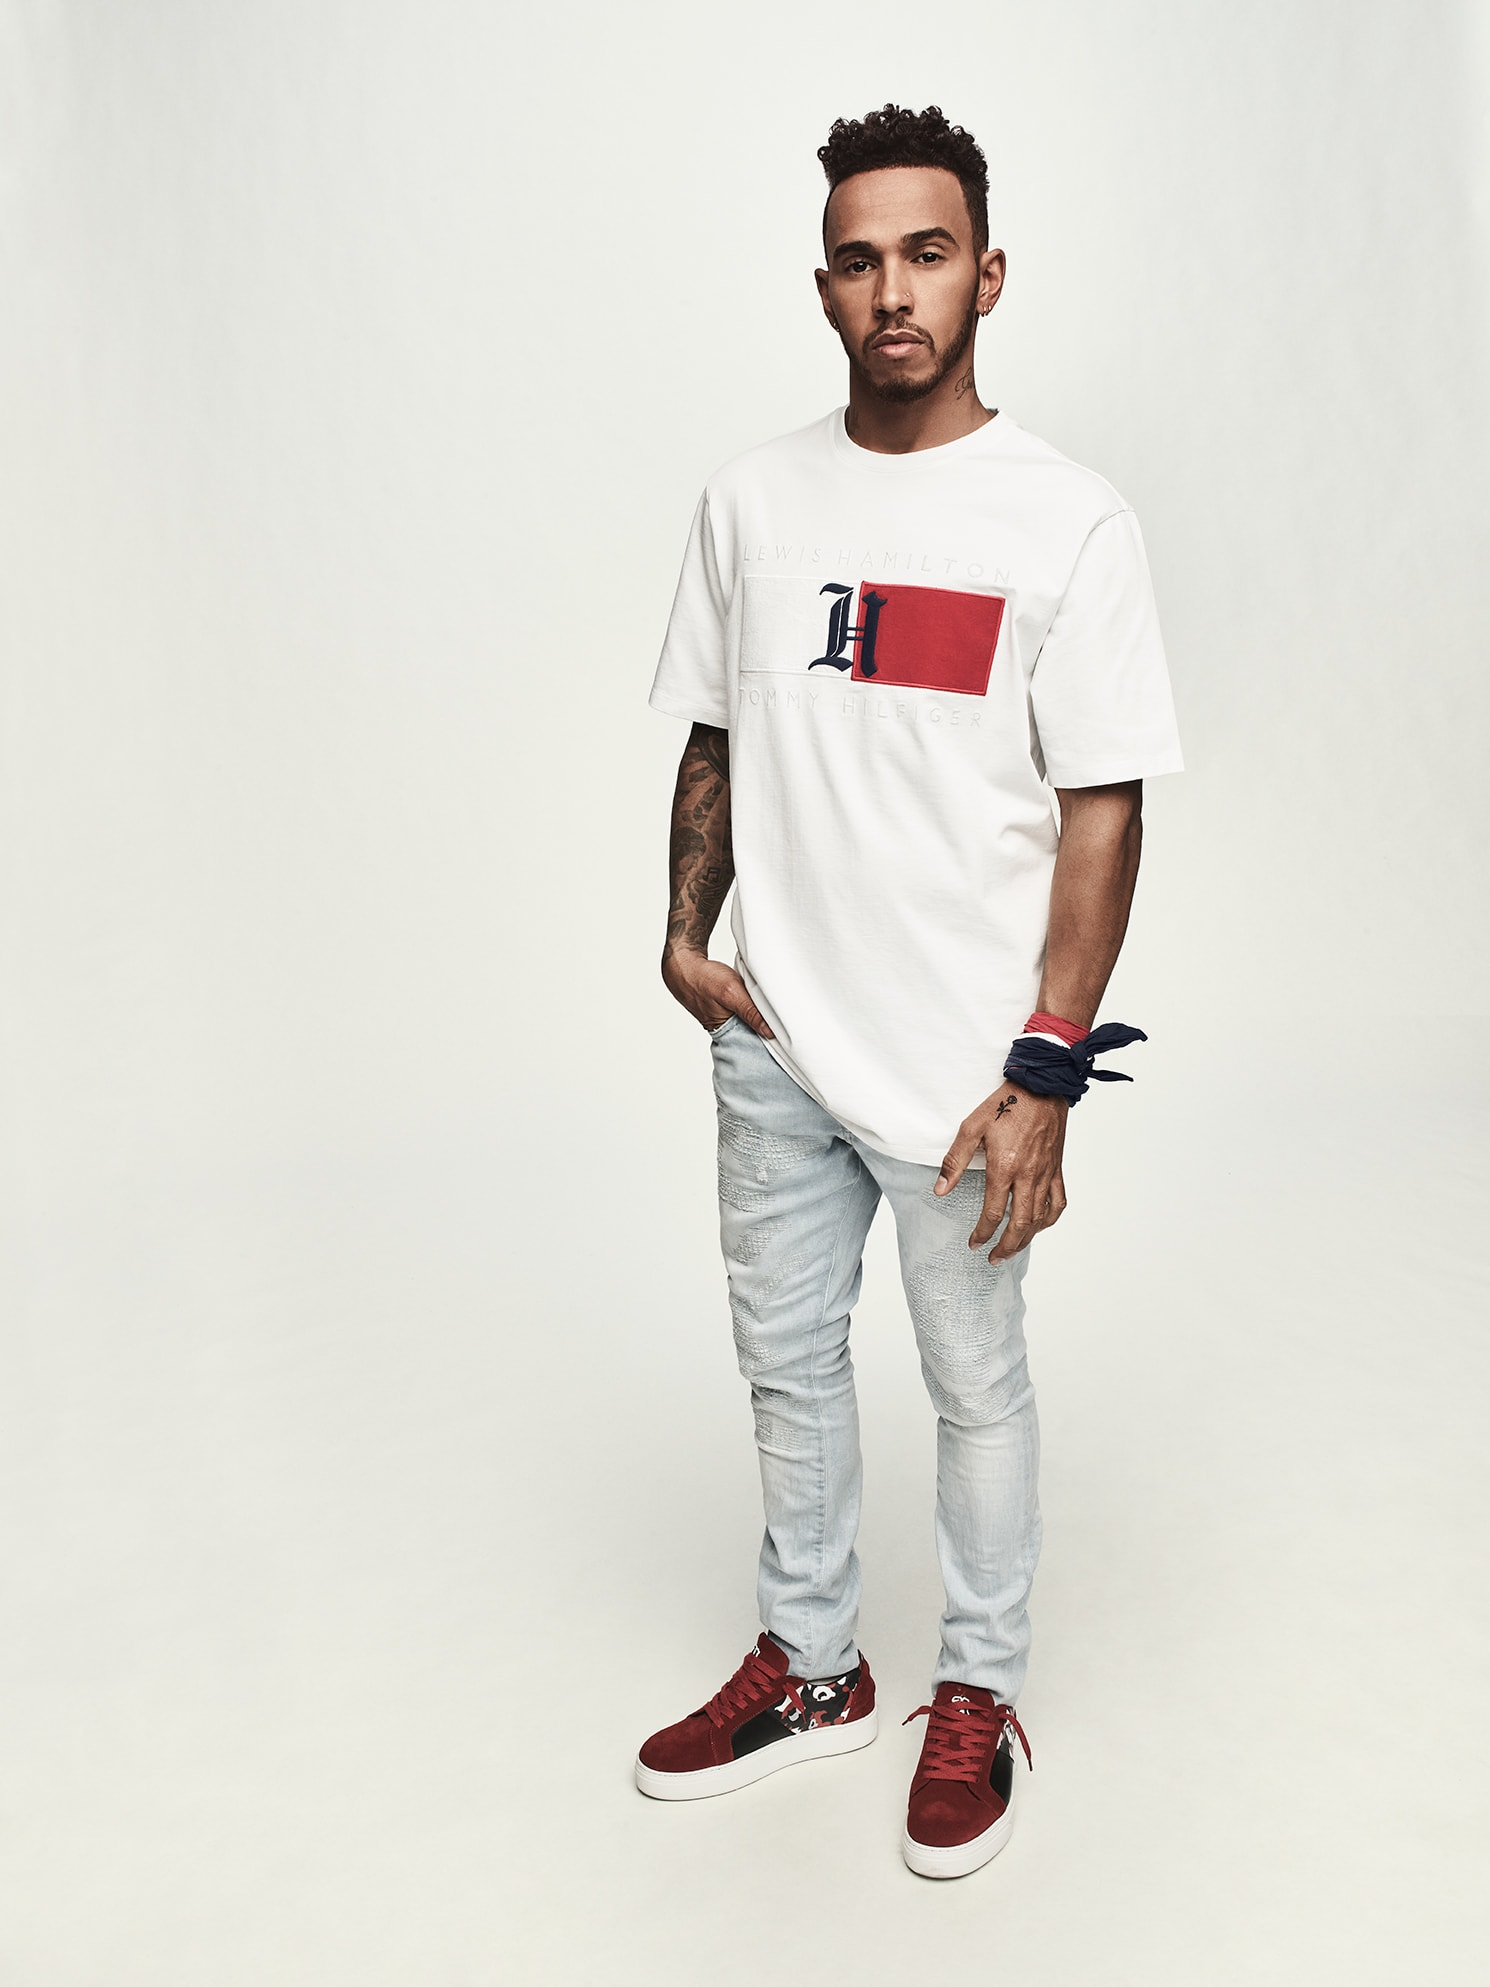 FALL 2018 TOMMYXLEWIS COLLECTION